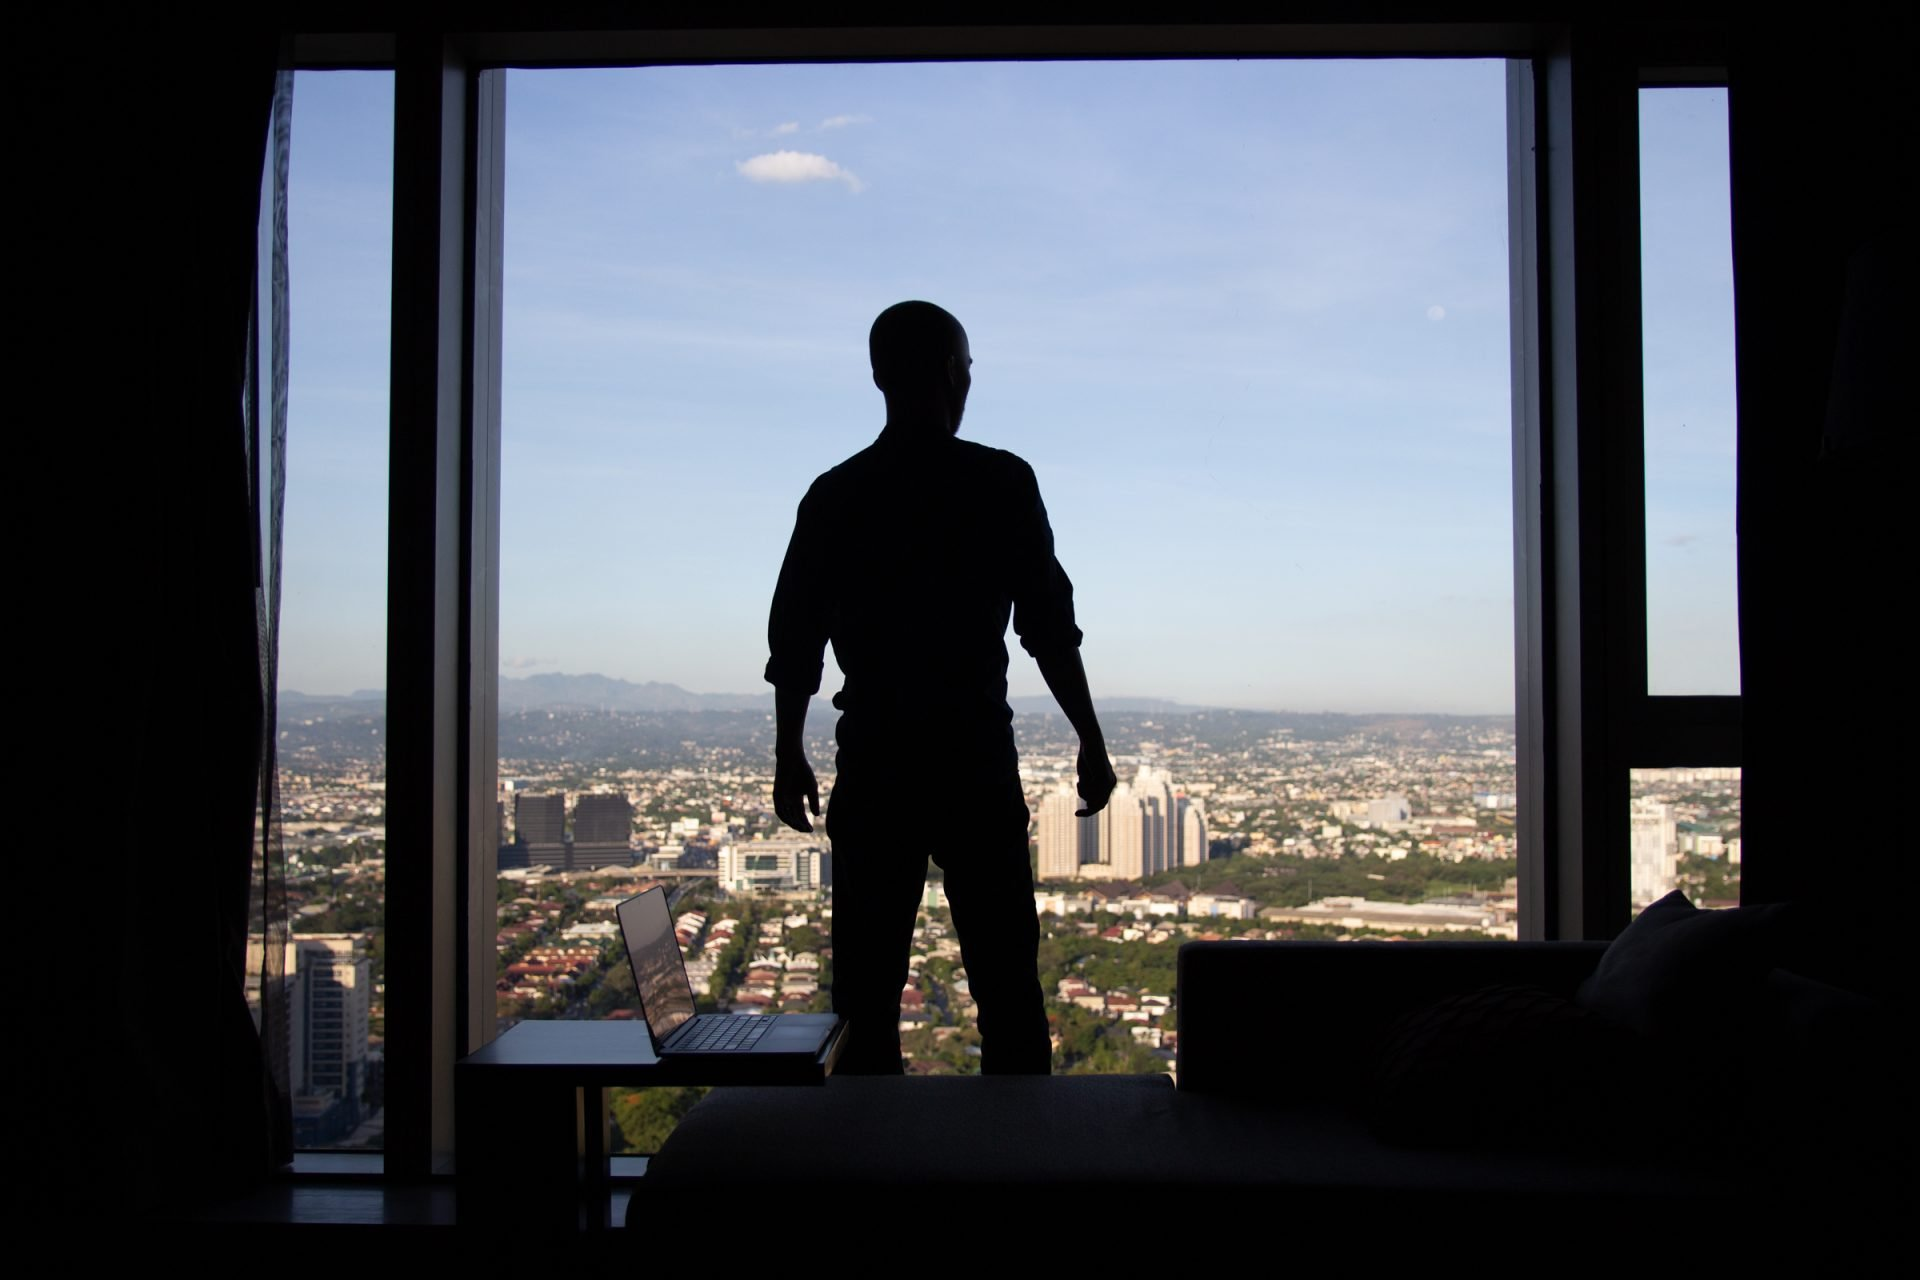 Man In Front Of Window With City View